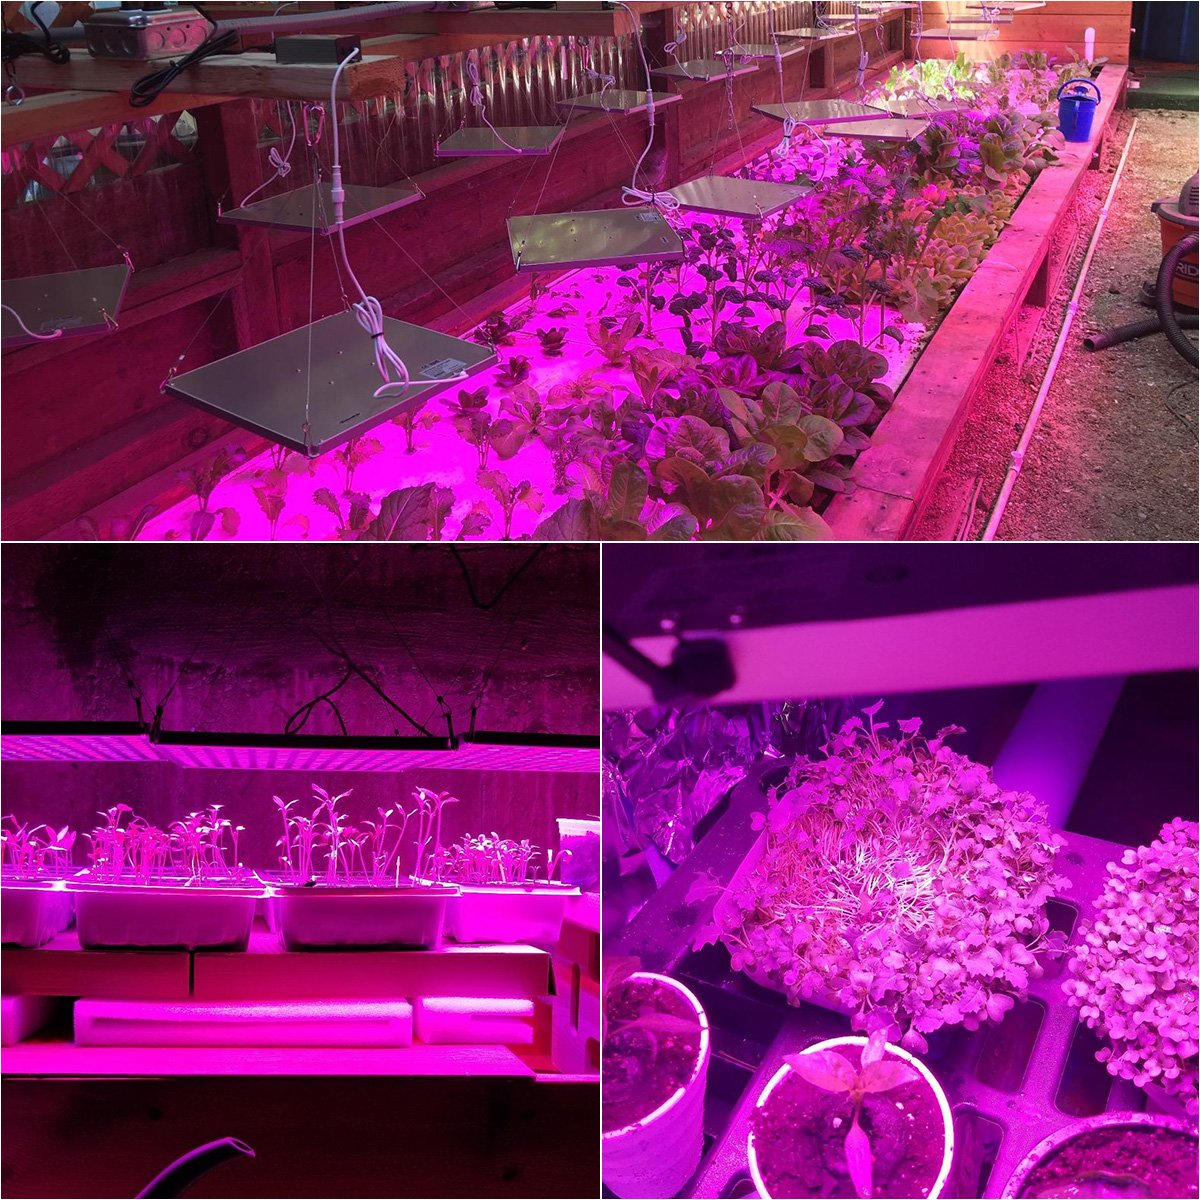 75w Plant Lights with Red /& Blue Spectrum Grow Lamp for Hydroponic Seedling Veg and Flower Roleadro LED Grow Lights for Indoor Plants Succulents 2 Packs